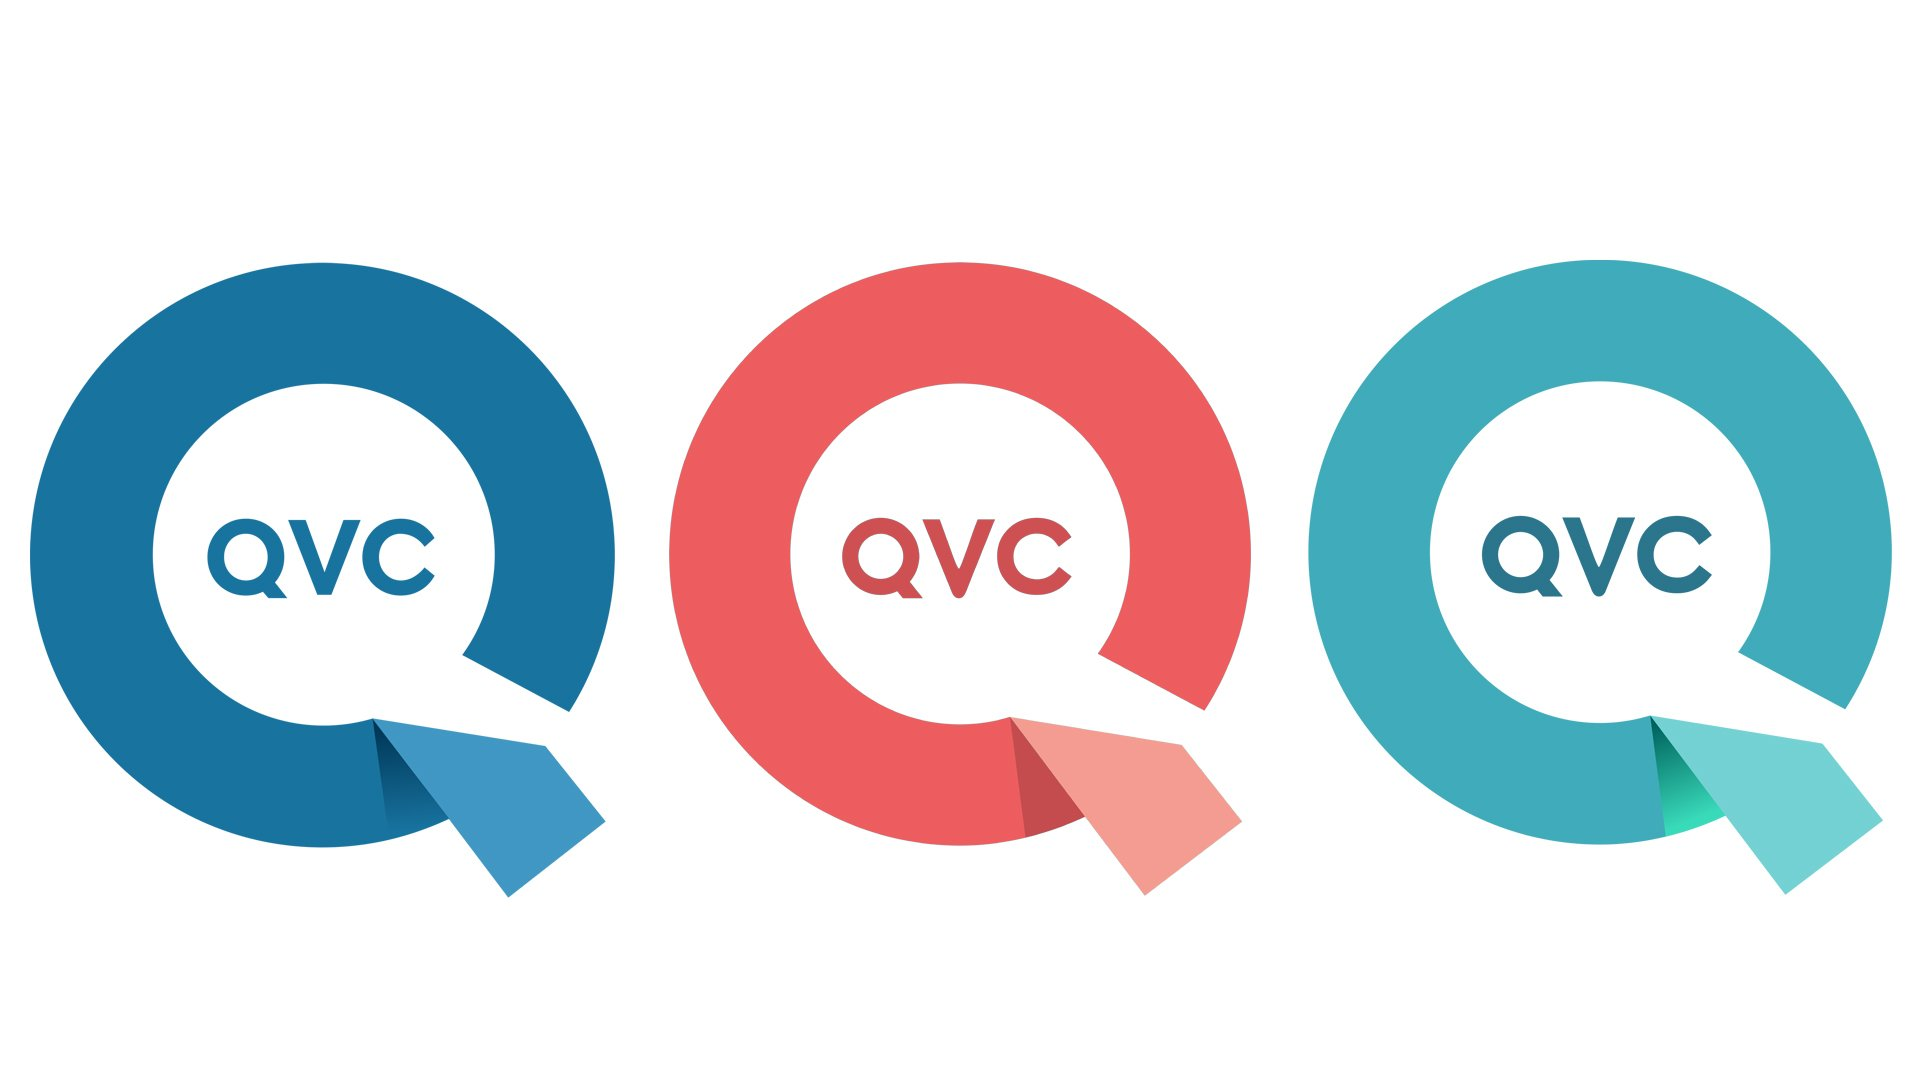 QVC Logo, QVC Symbol, Meaning, History and Evolution